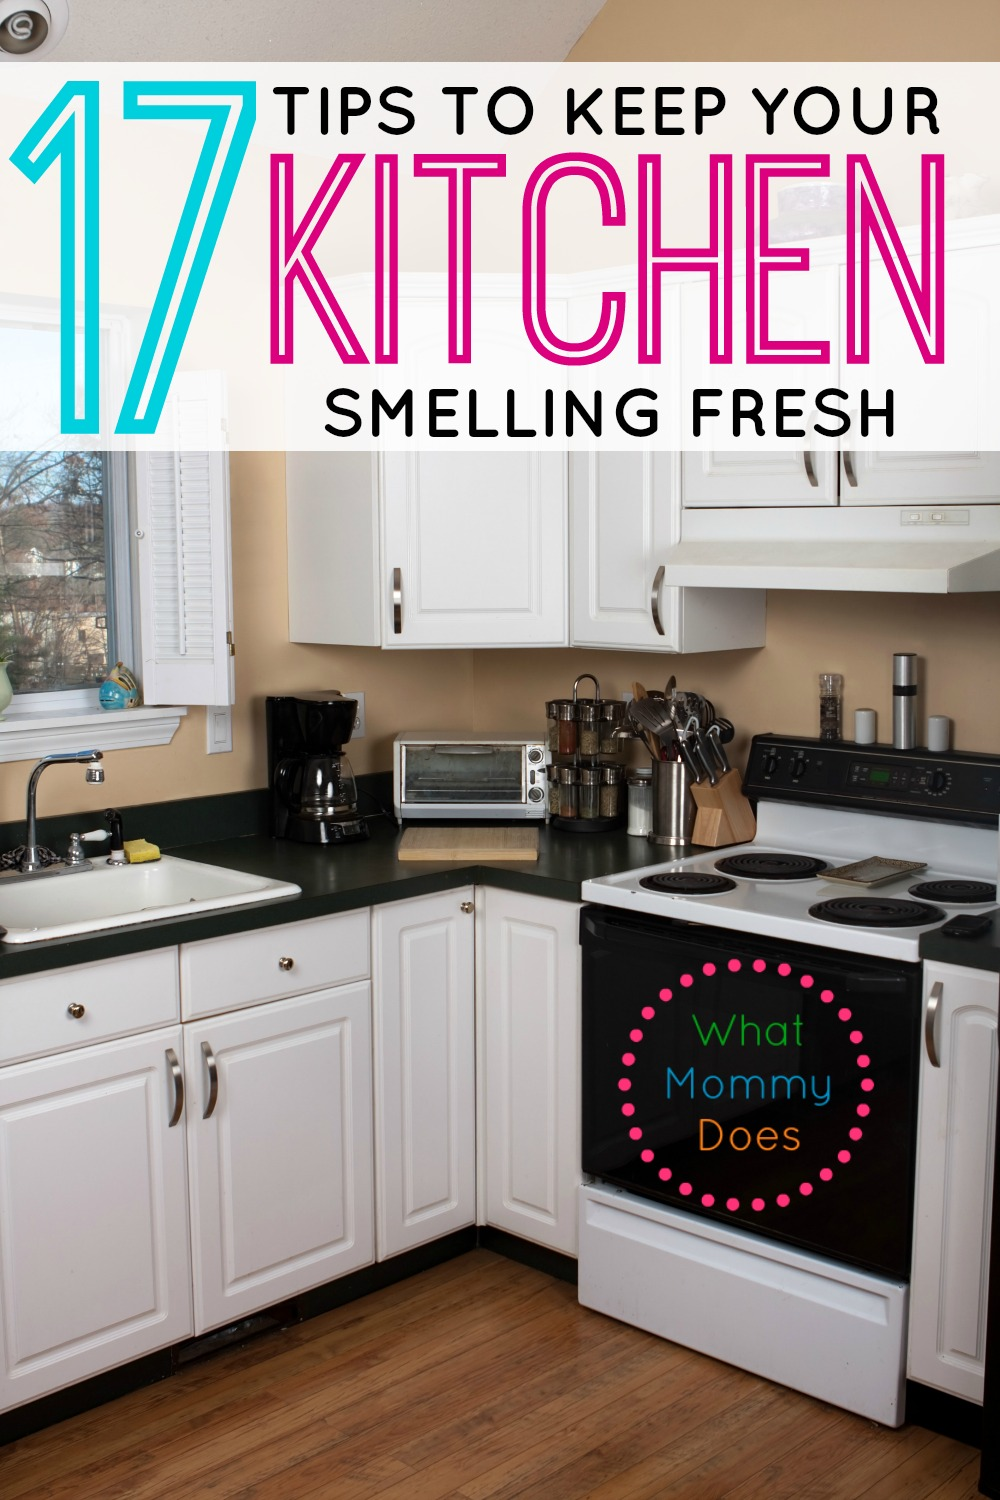 Discover how to get rid of kitchen smells and to keep your kitchen fresh and clean. These 17 tips and tricks are super easy for a clean kitchen!